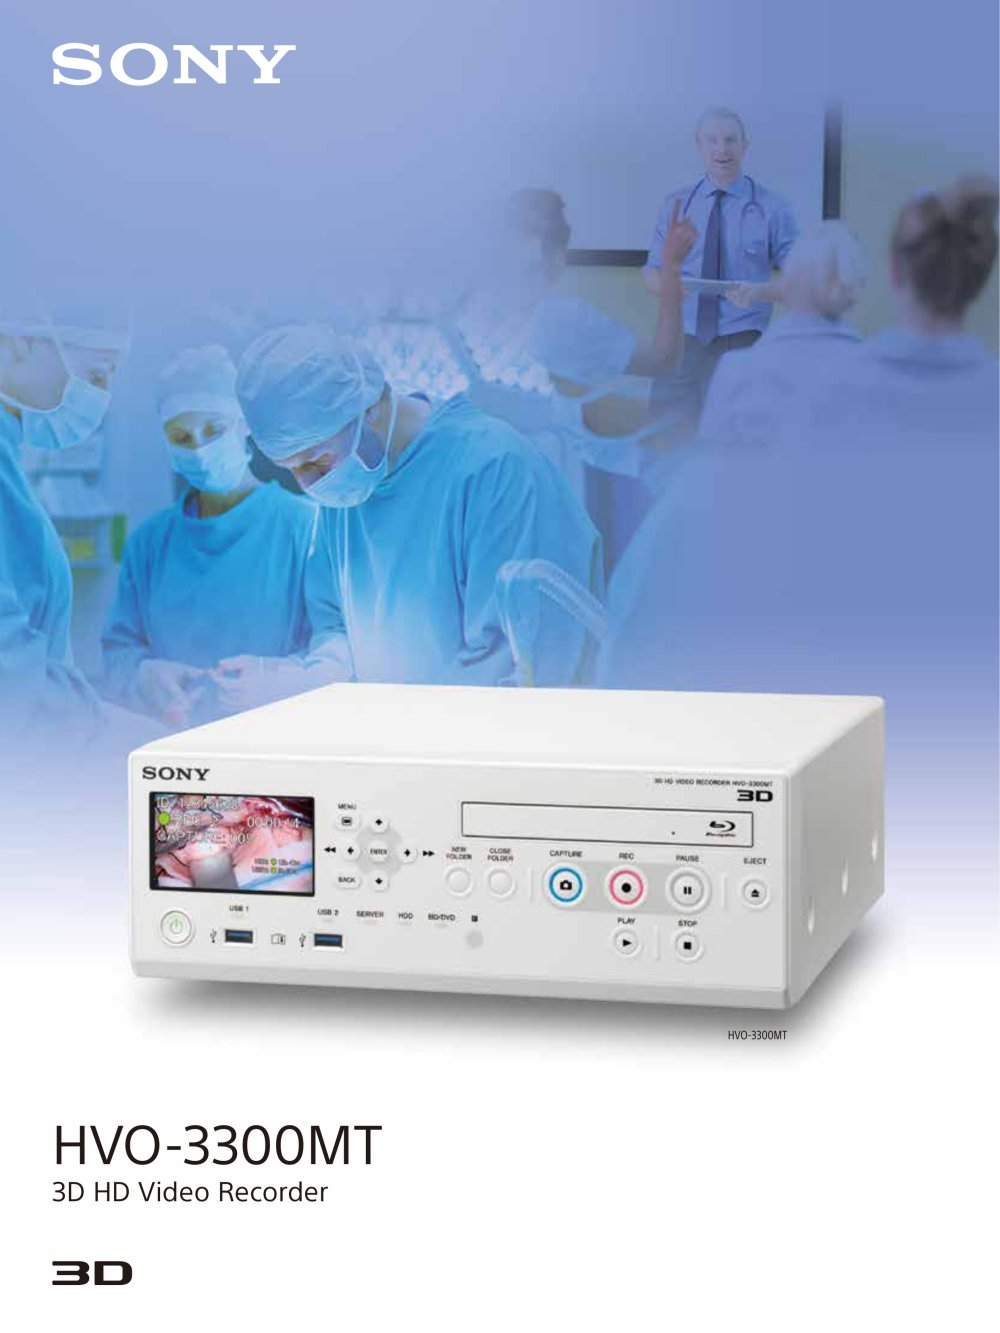 Hvo 3300mt 3d Hd Video Recorder Sony Pdf Catalogue Technical